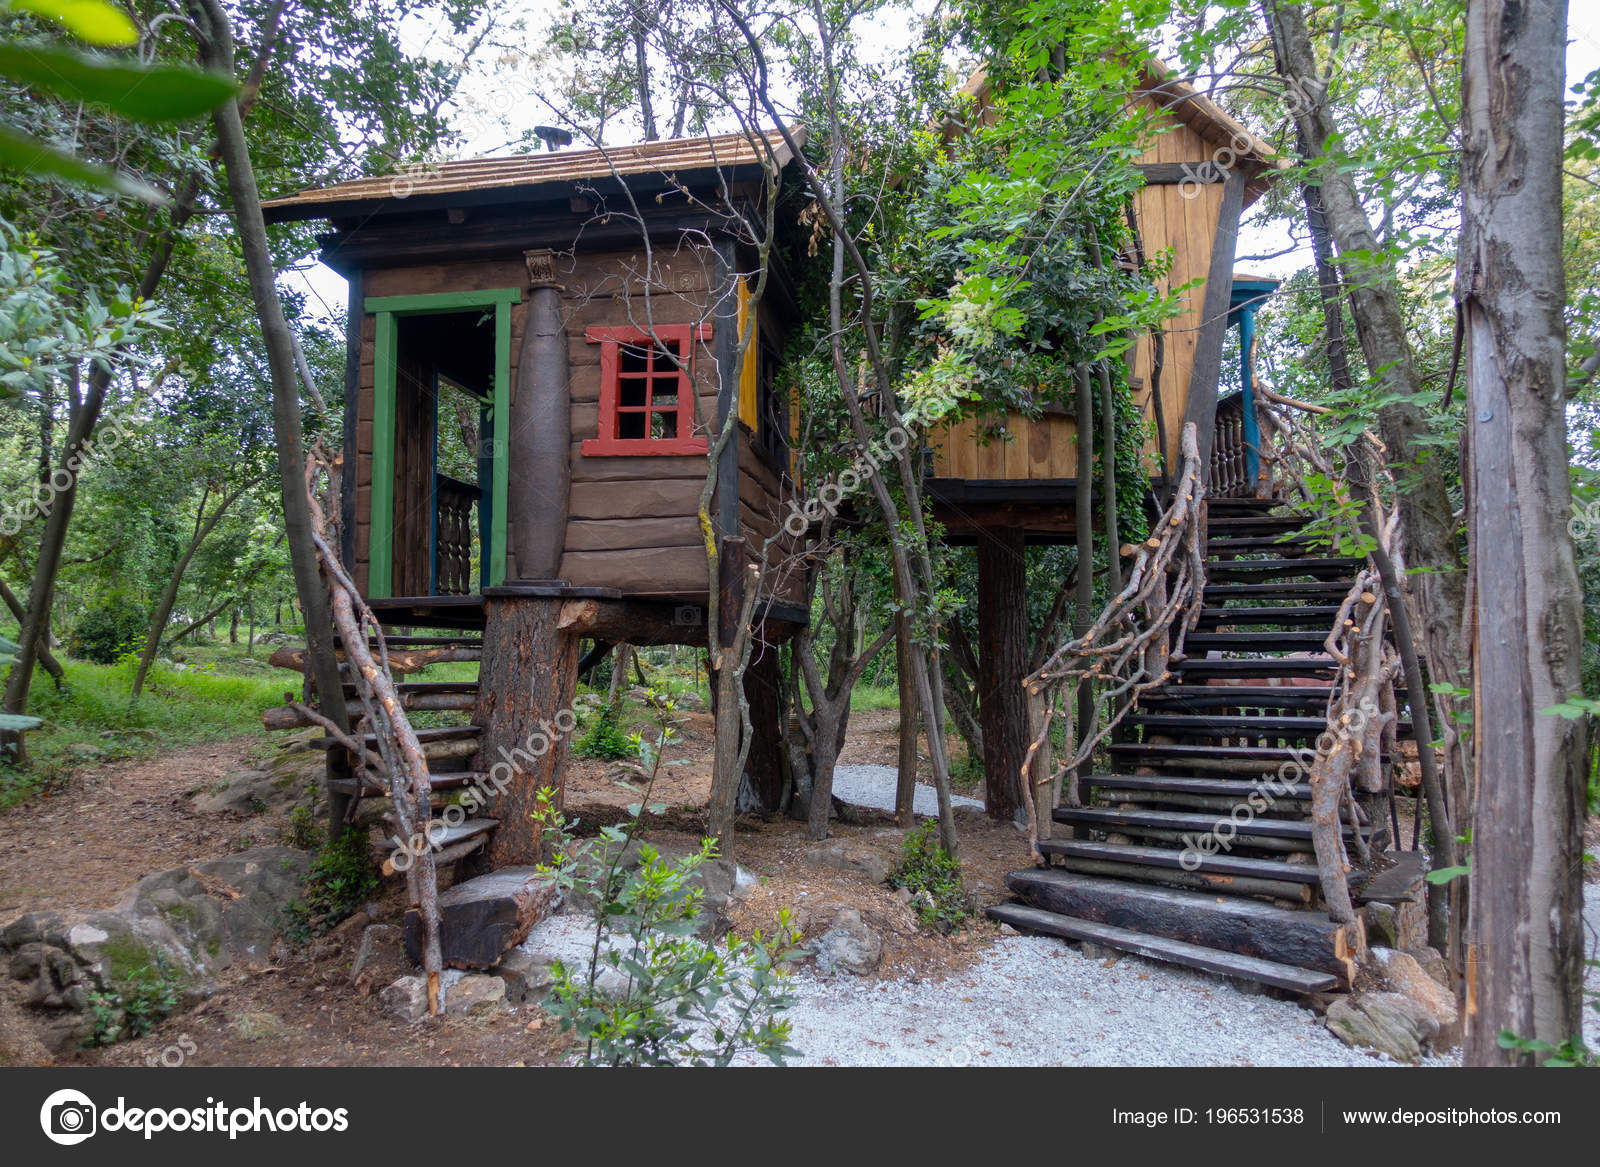 Picture of: Fantasy Tree House For Children Playing Stock Photo C Asafaric 196531538